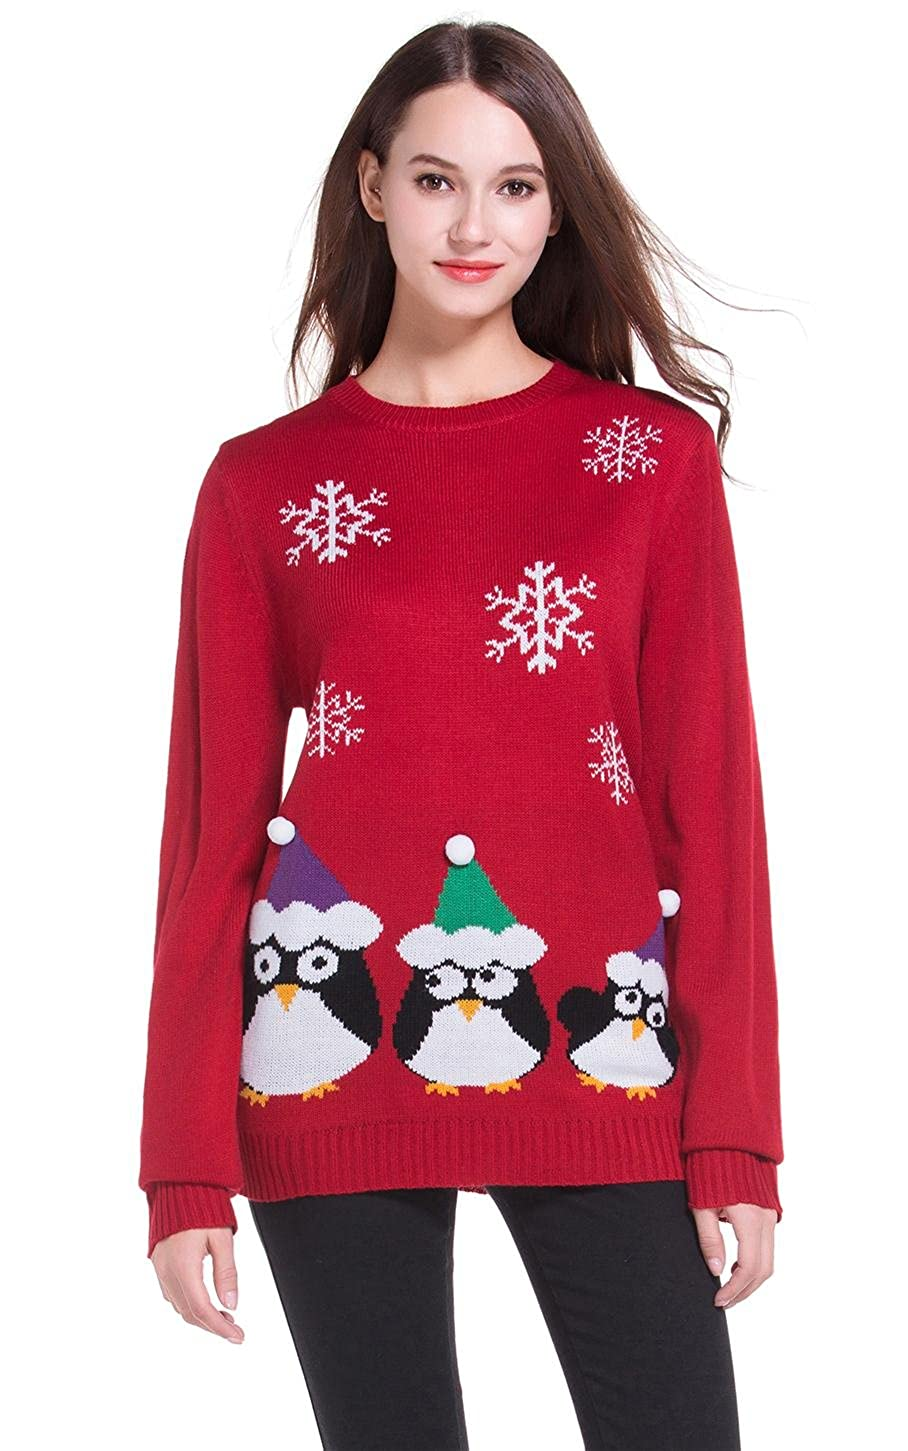 39991ab1af35 Top1   daisysboutique  Women s Christmas Cute Penguin Knitted Sweater Girl  Pullover